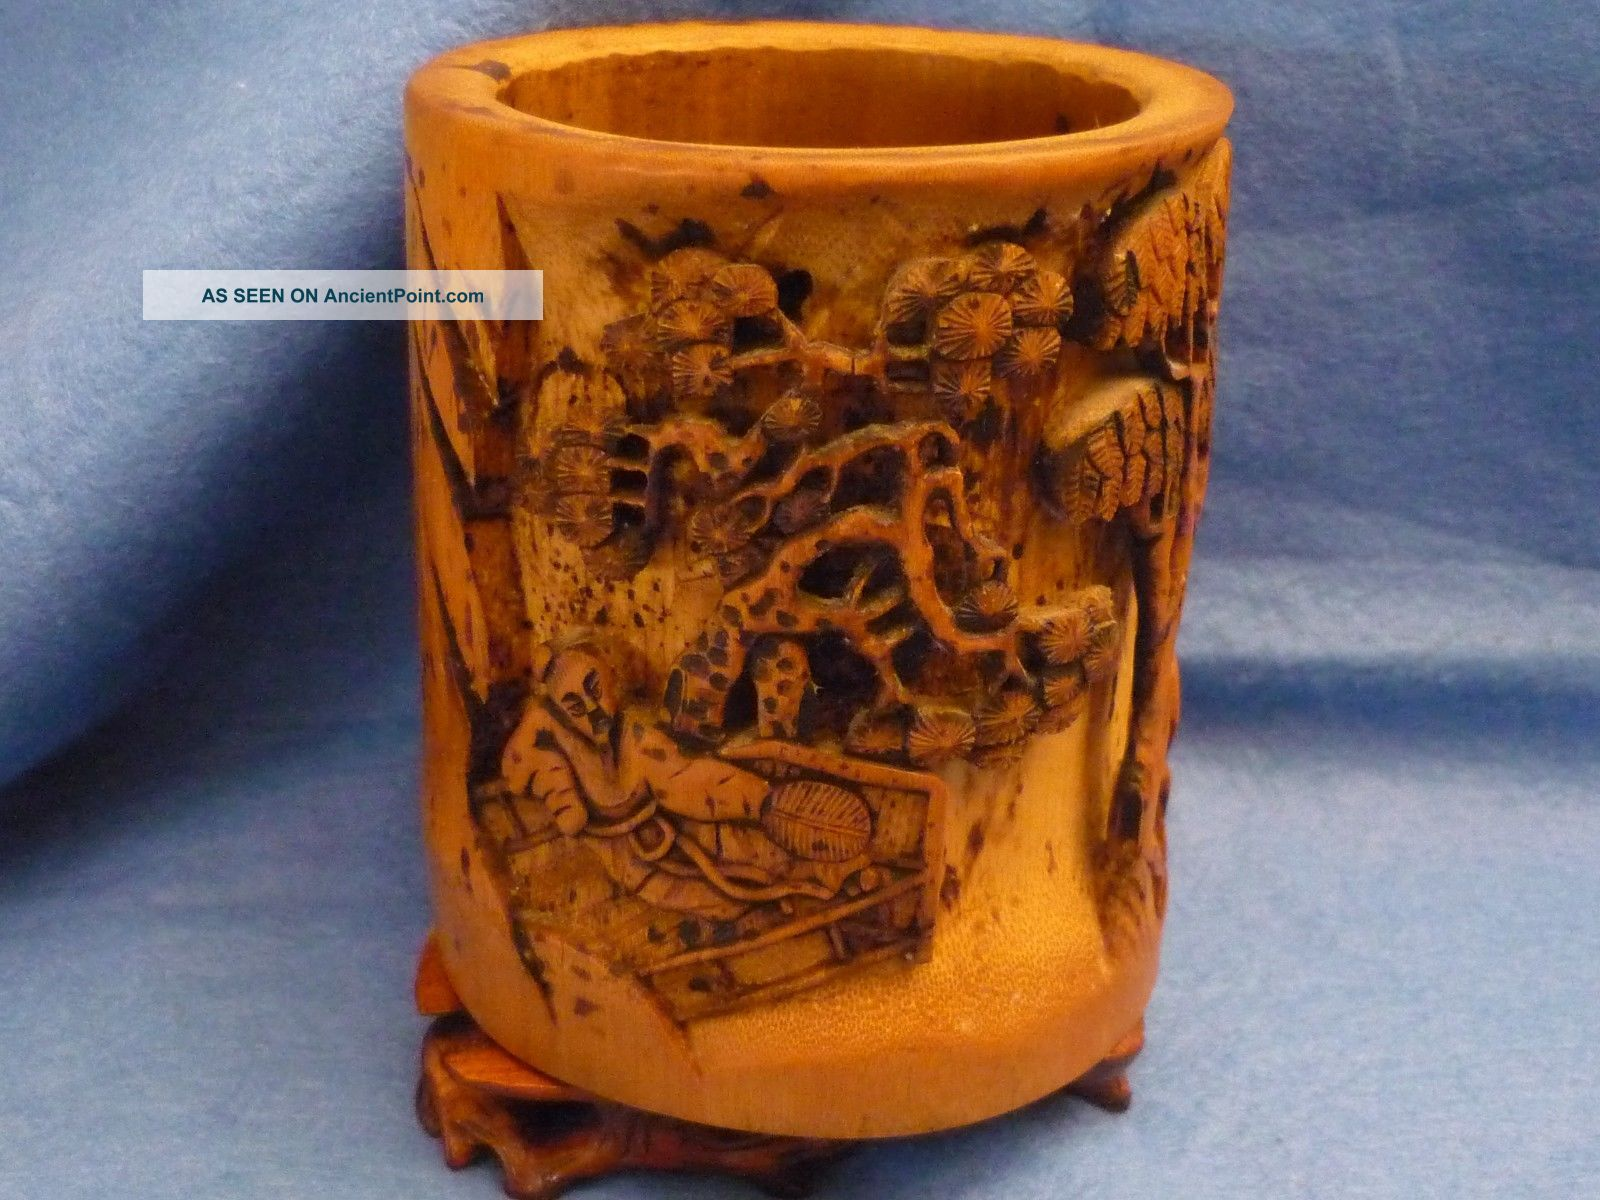 Chinese Brush Pot Carved Bamboo - Pot à Pinceaux - Bambus Geschnitzt Brush Pots photo